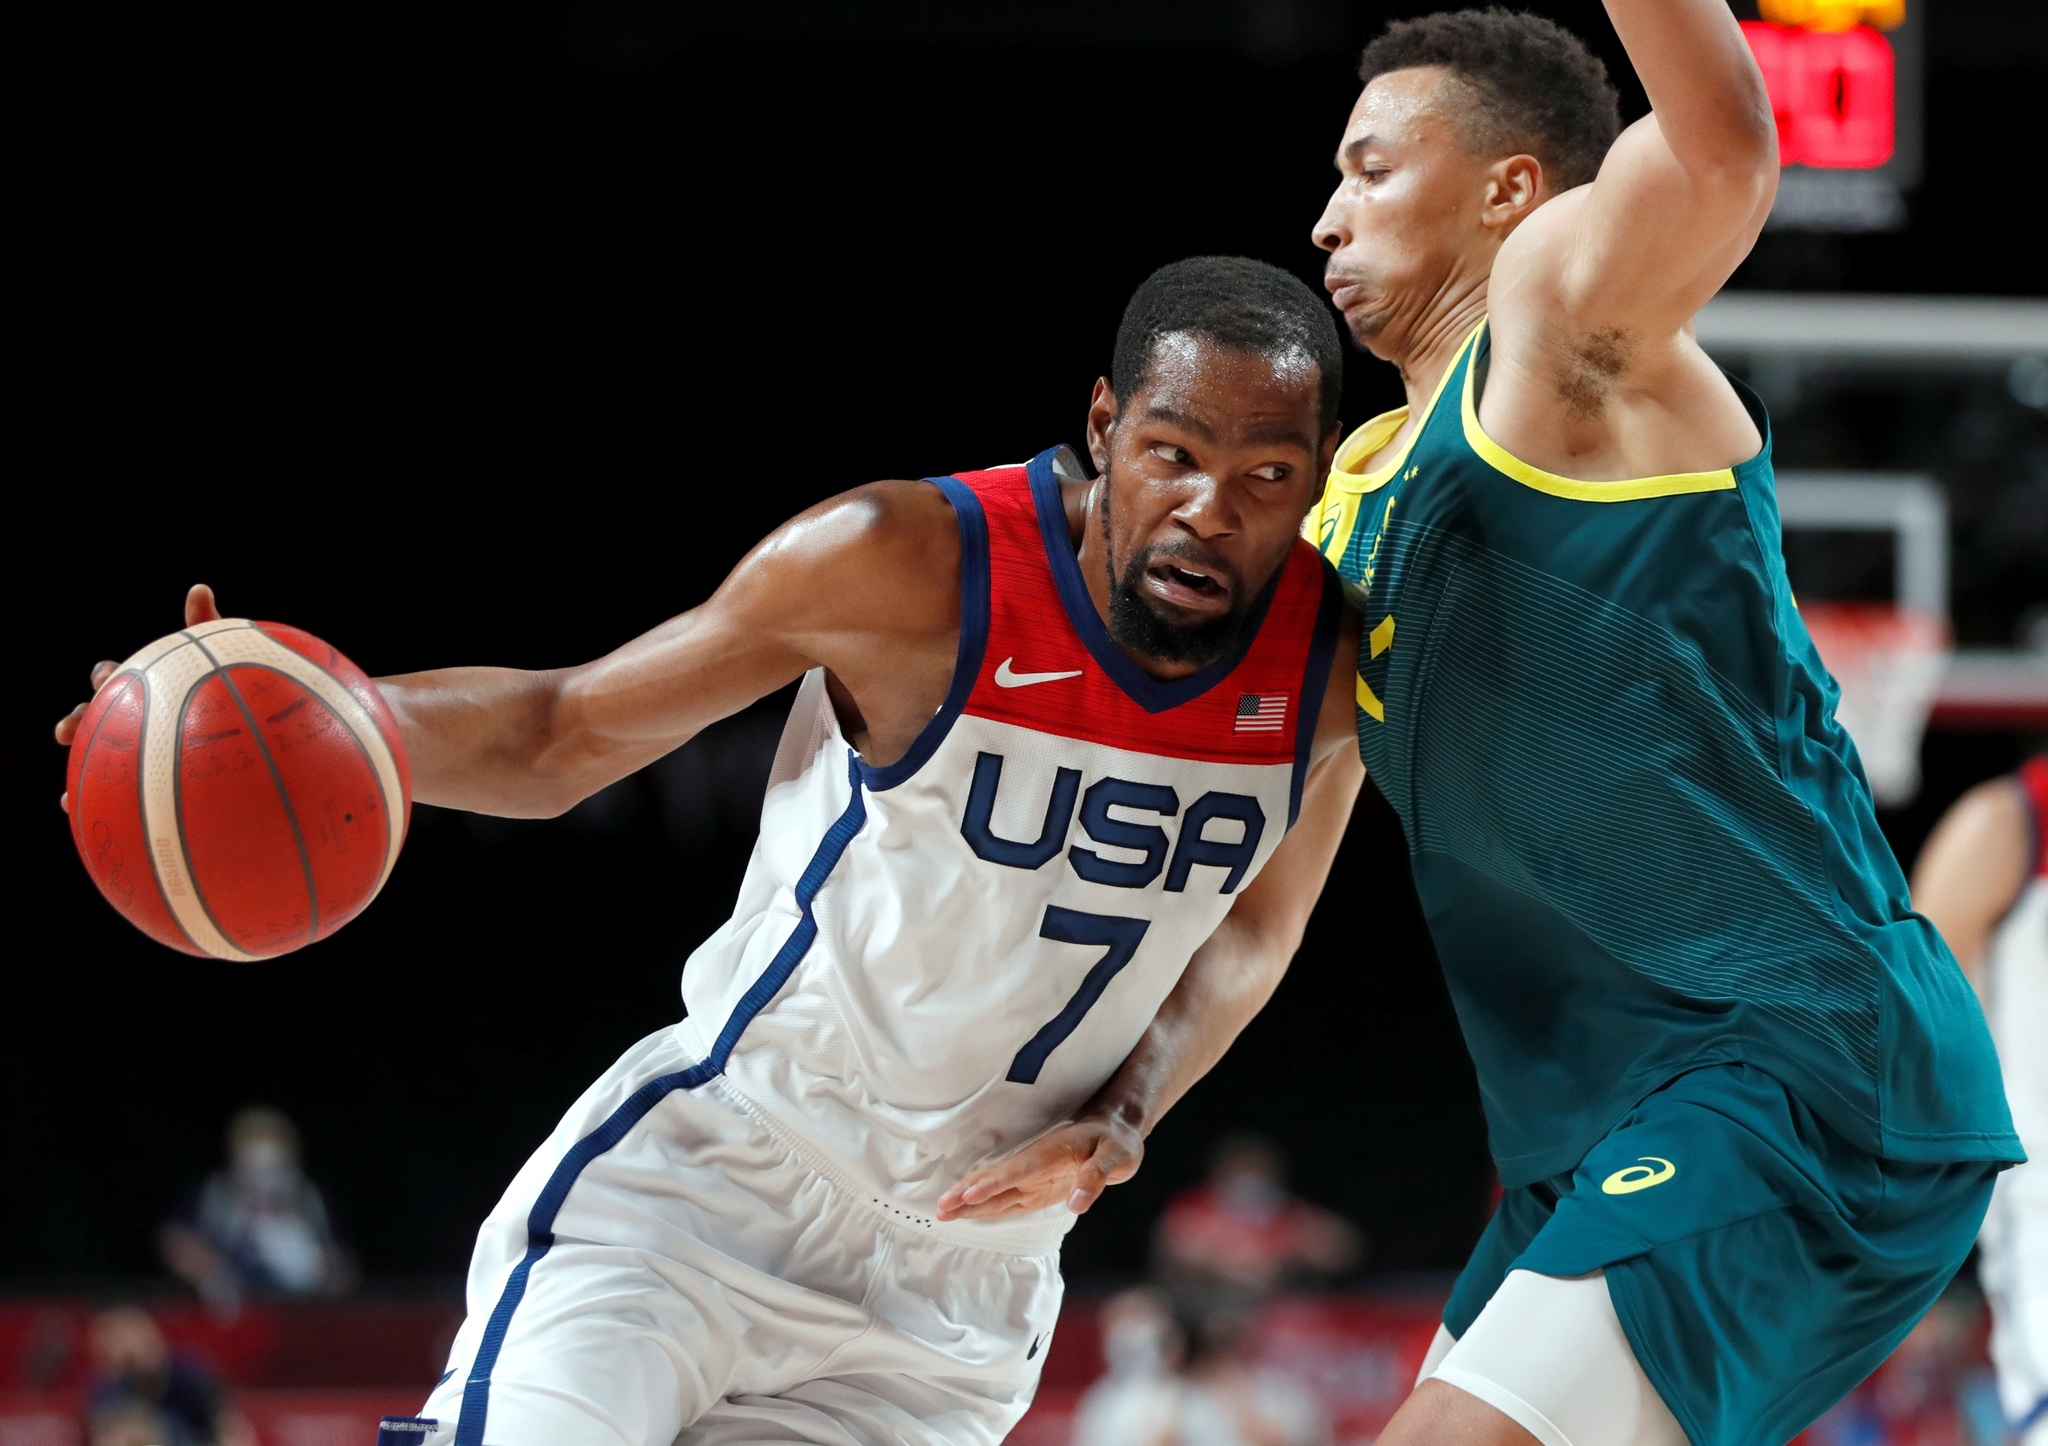 Kevin Durant during the USA's semi-final against Australia.